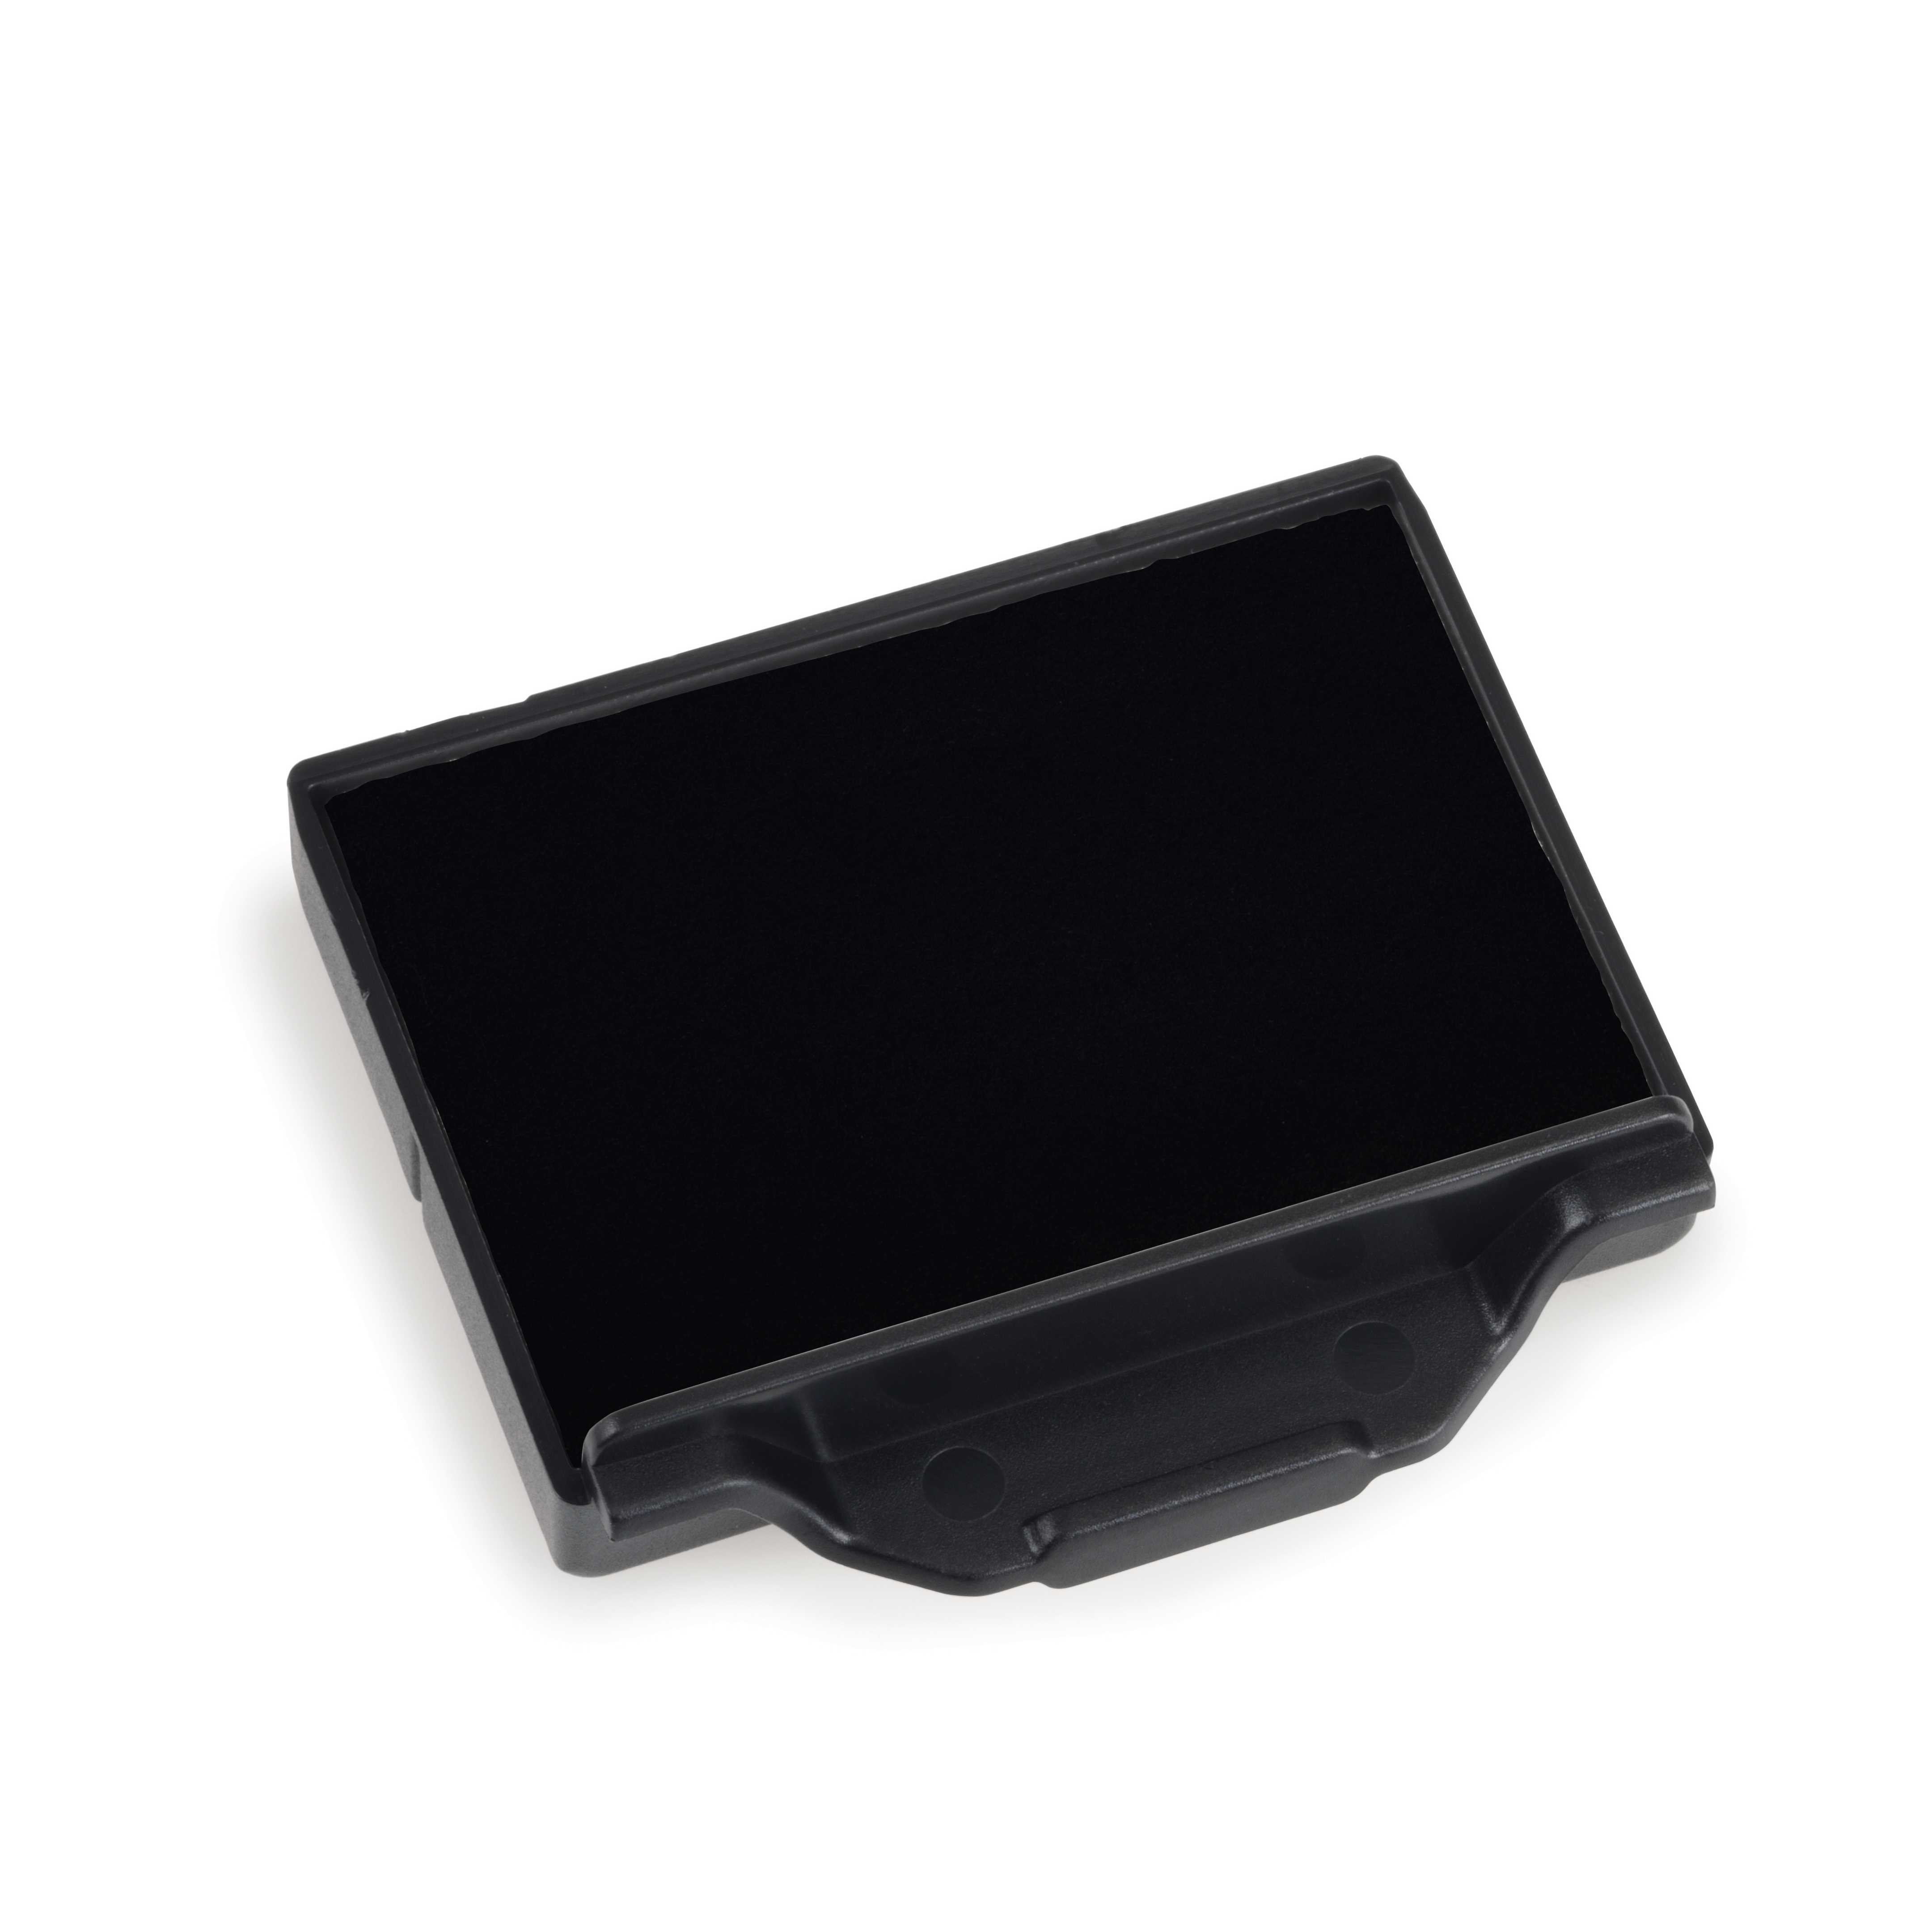 Replacement Pad for Trodat 5200 Self Inking Stamp Black Ink Color by